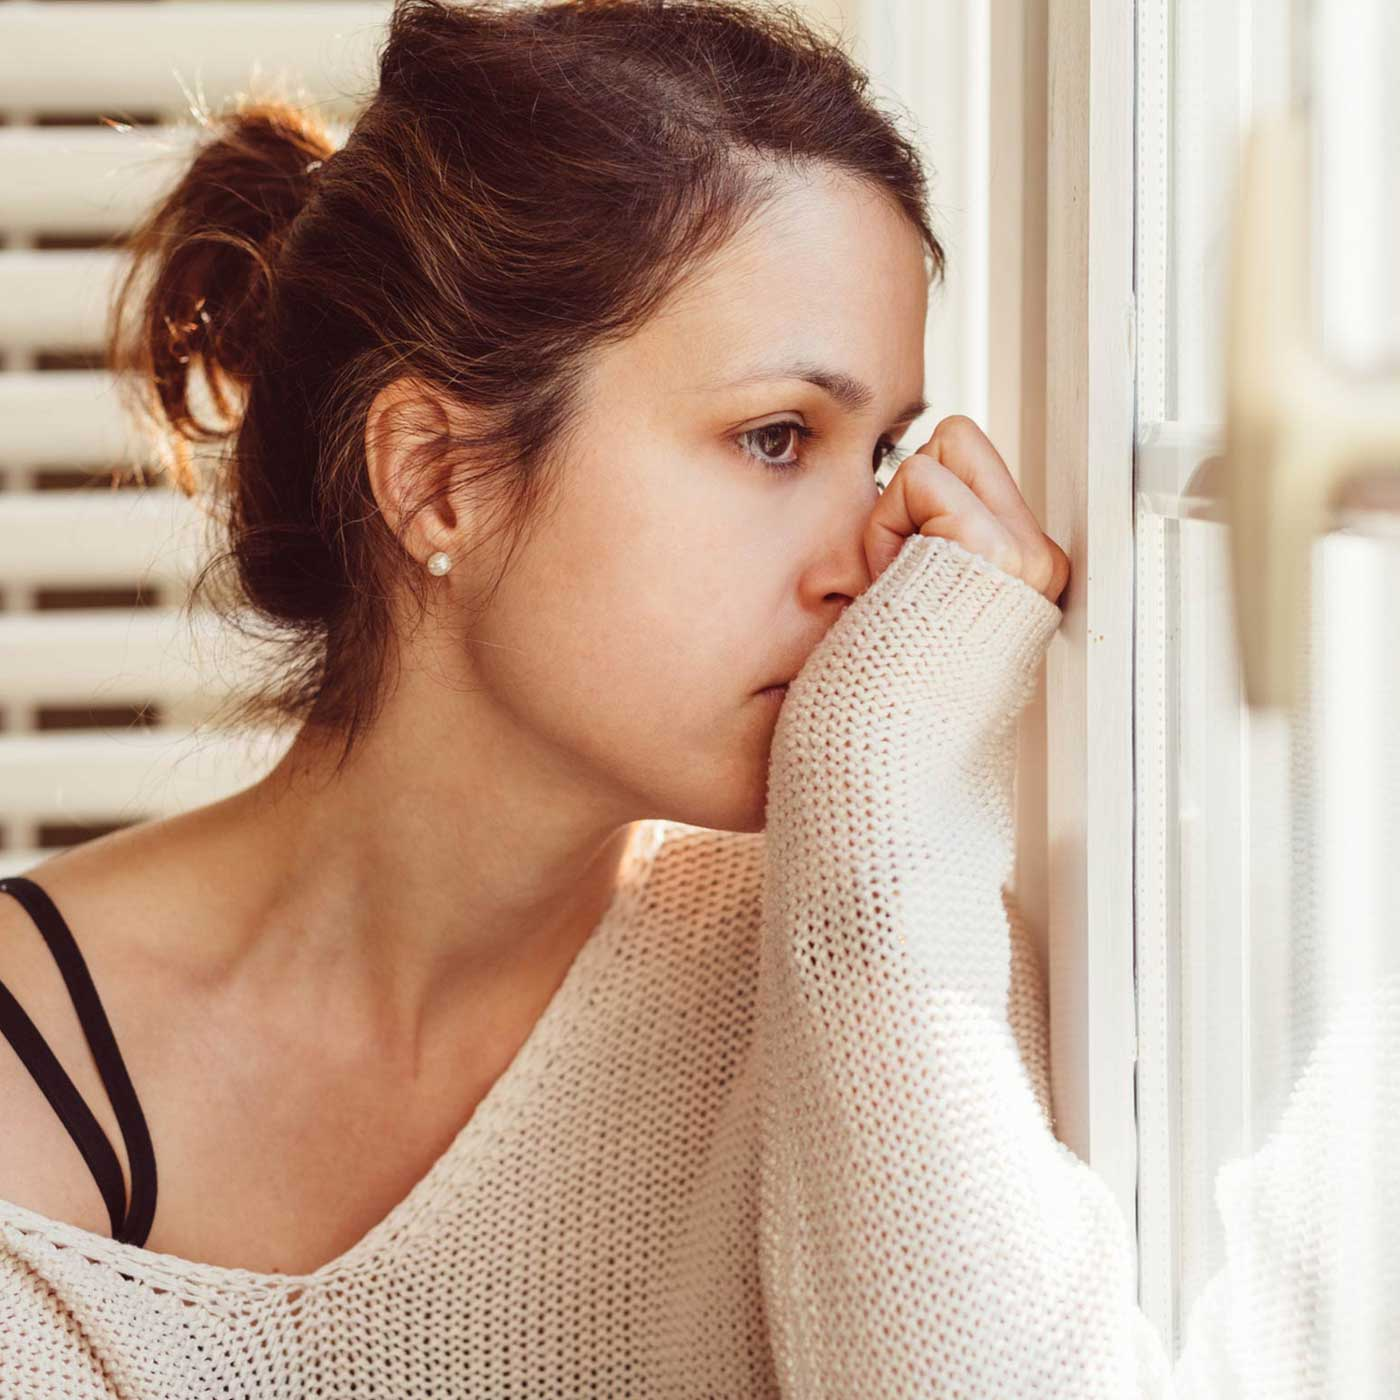 Essential Chiropractic and Healthcare Clinic - Help and Treatments for Nervous System Conditions Woman by the Window